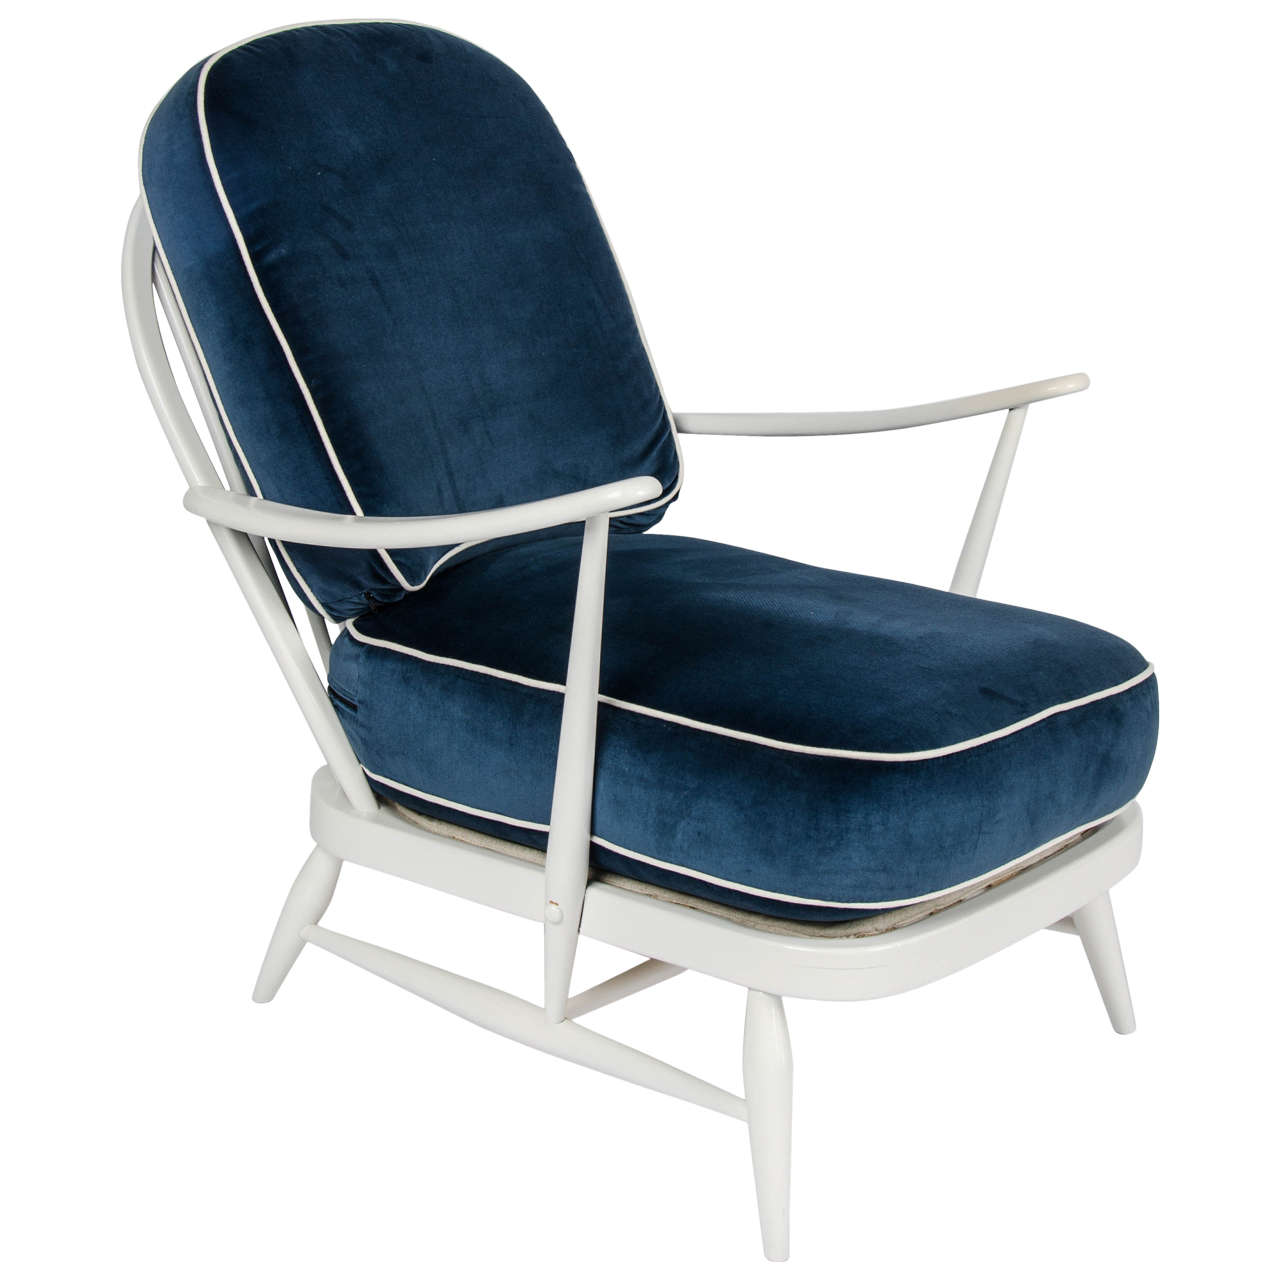 Vintage 1950s Ercol White Wood/Blue Velvet Chair By Lucian Ercolani 1